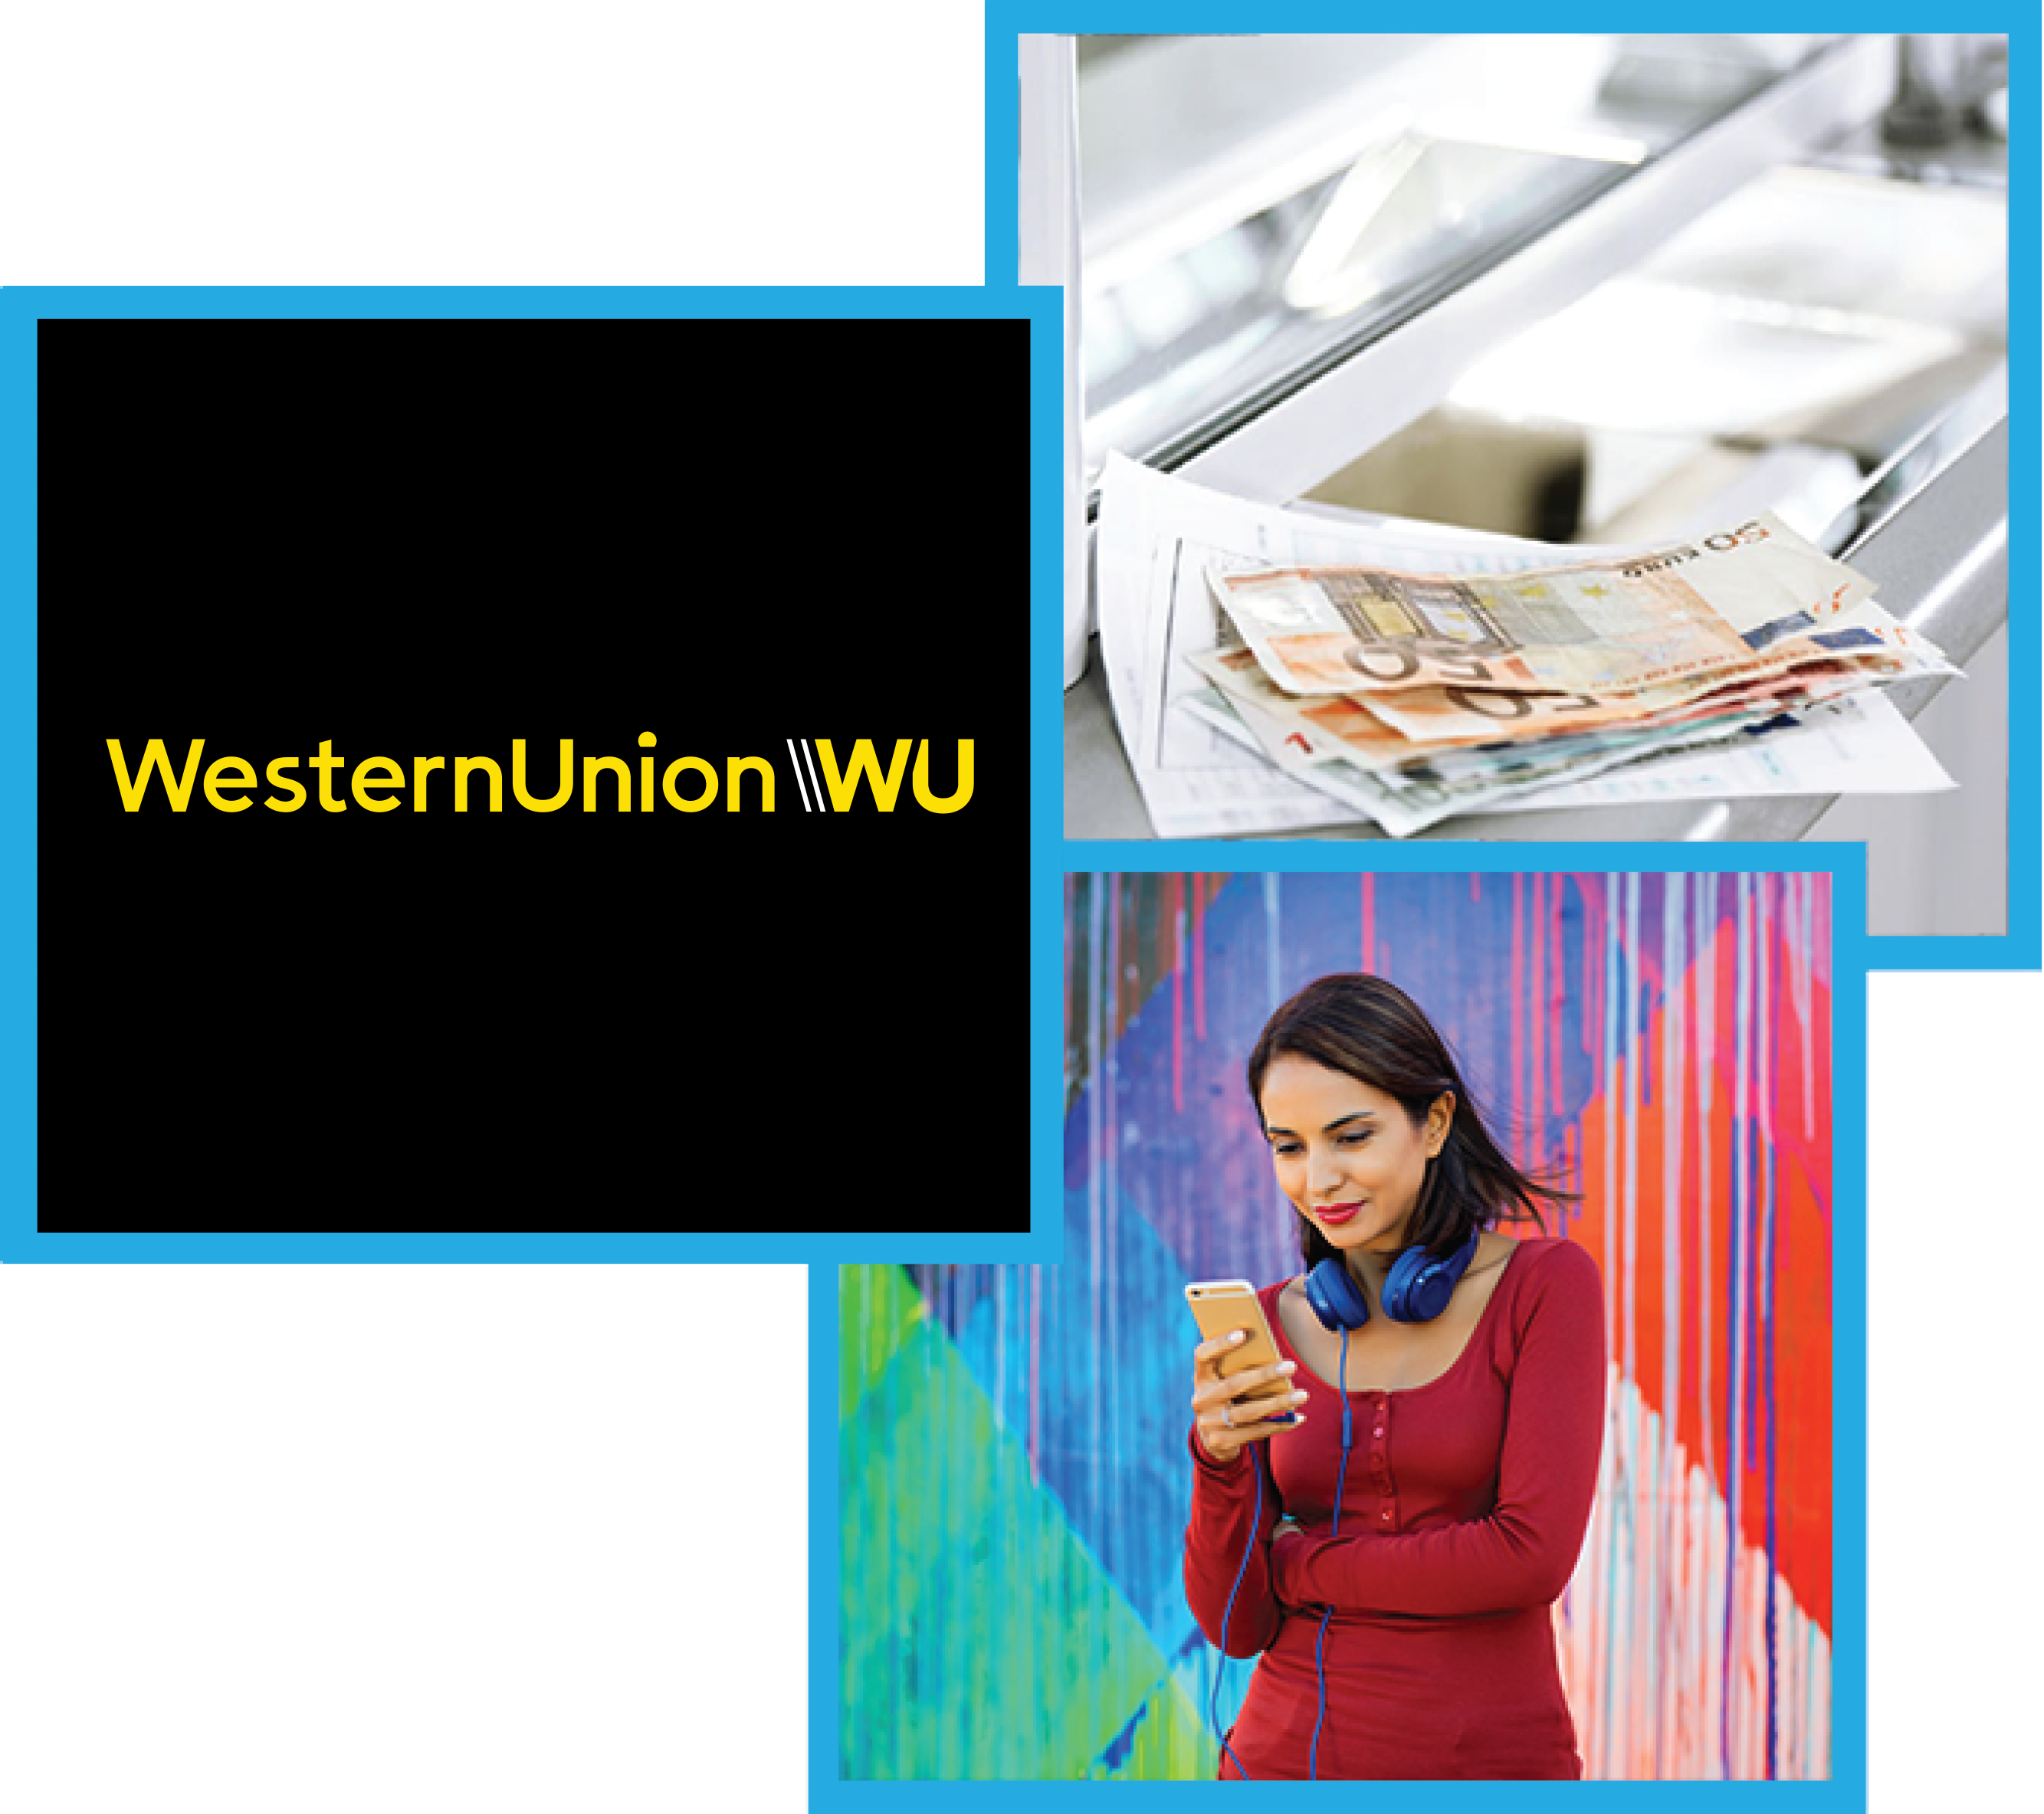 About Western Union